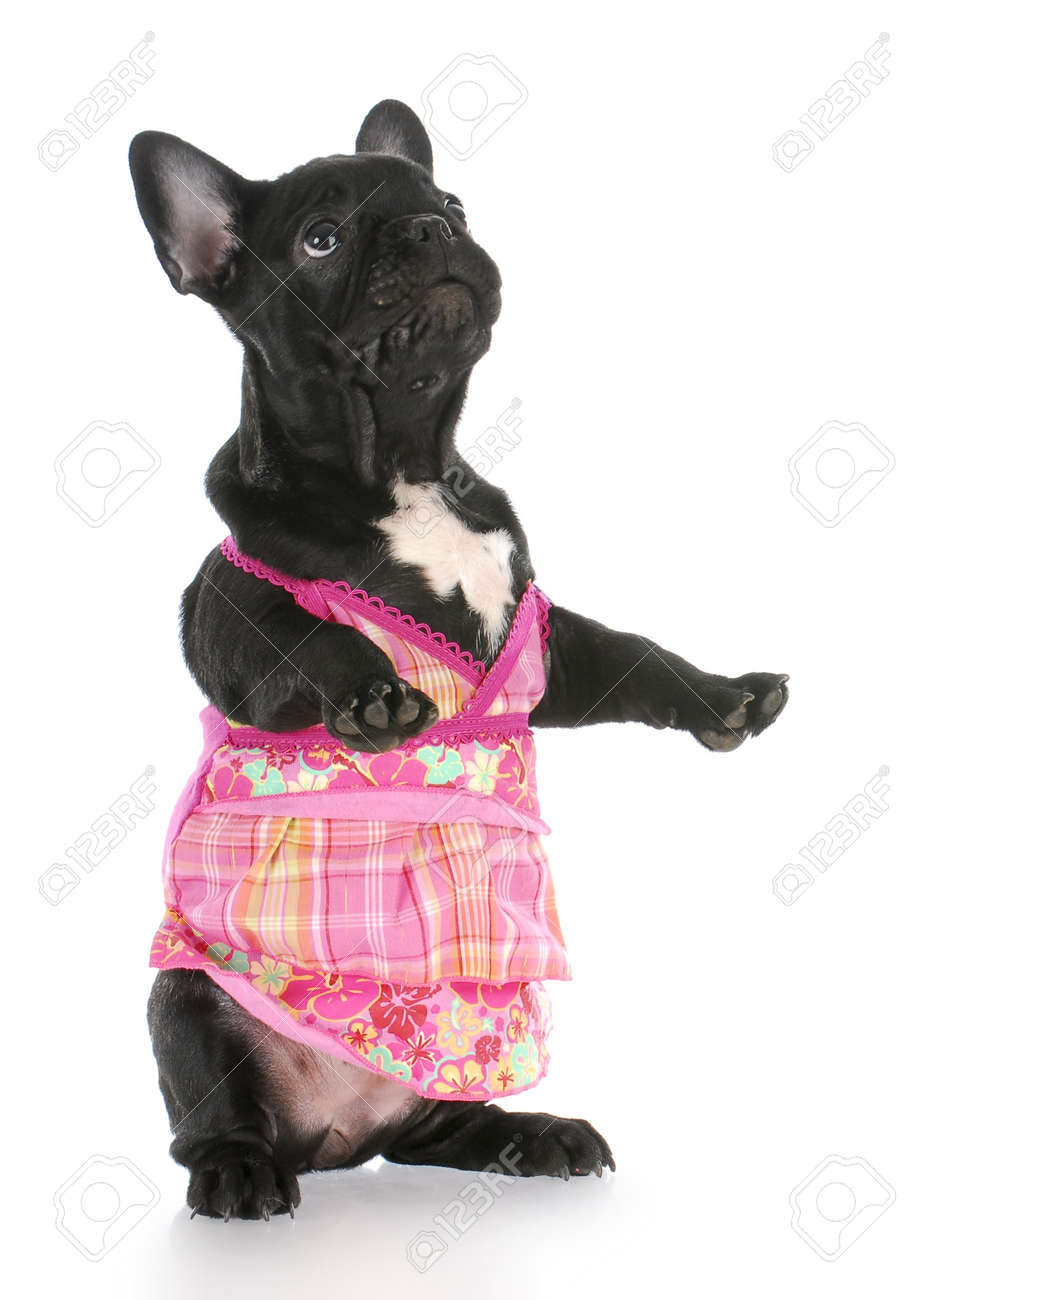 french bulldog wearing pink dress standing on back legs with reflection on white background Stock Photo - 7879426